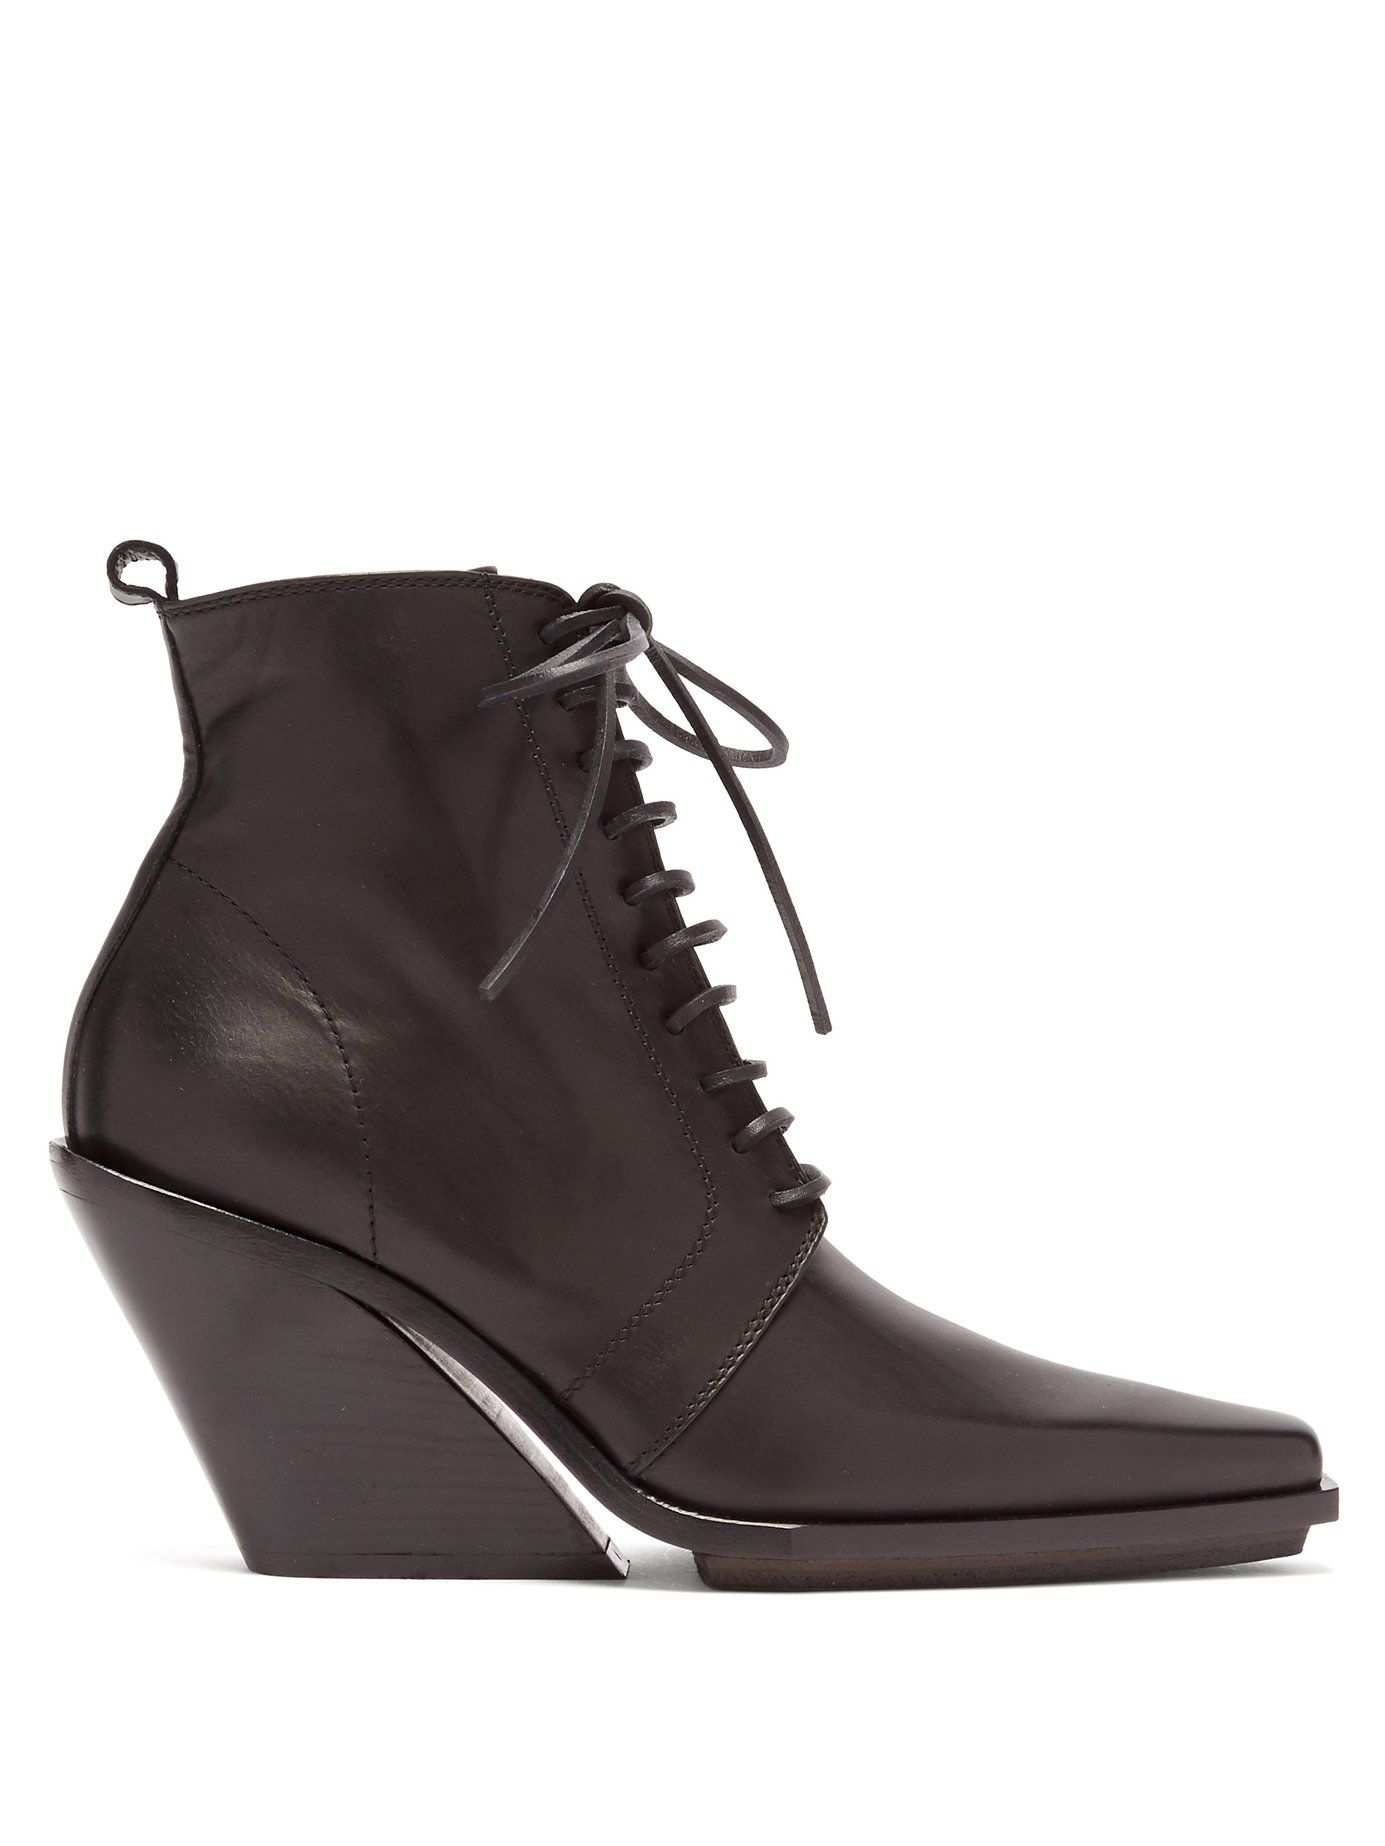 c26d1e845ac Slanted-heel lace-up leather ankle boots | Ann Demeulemeester ...